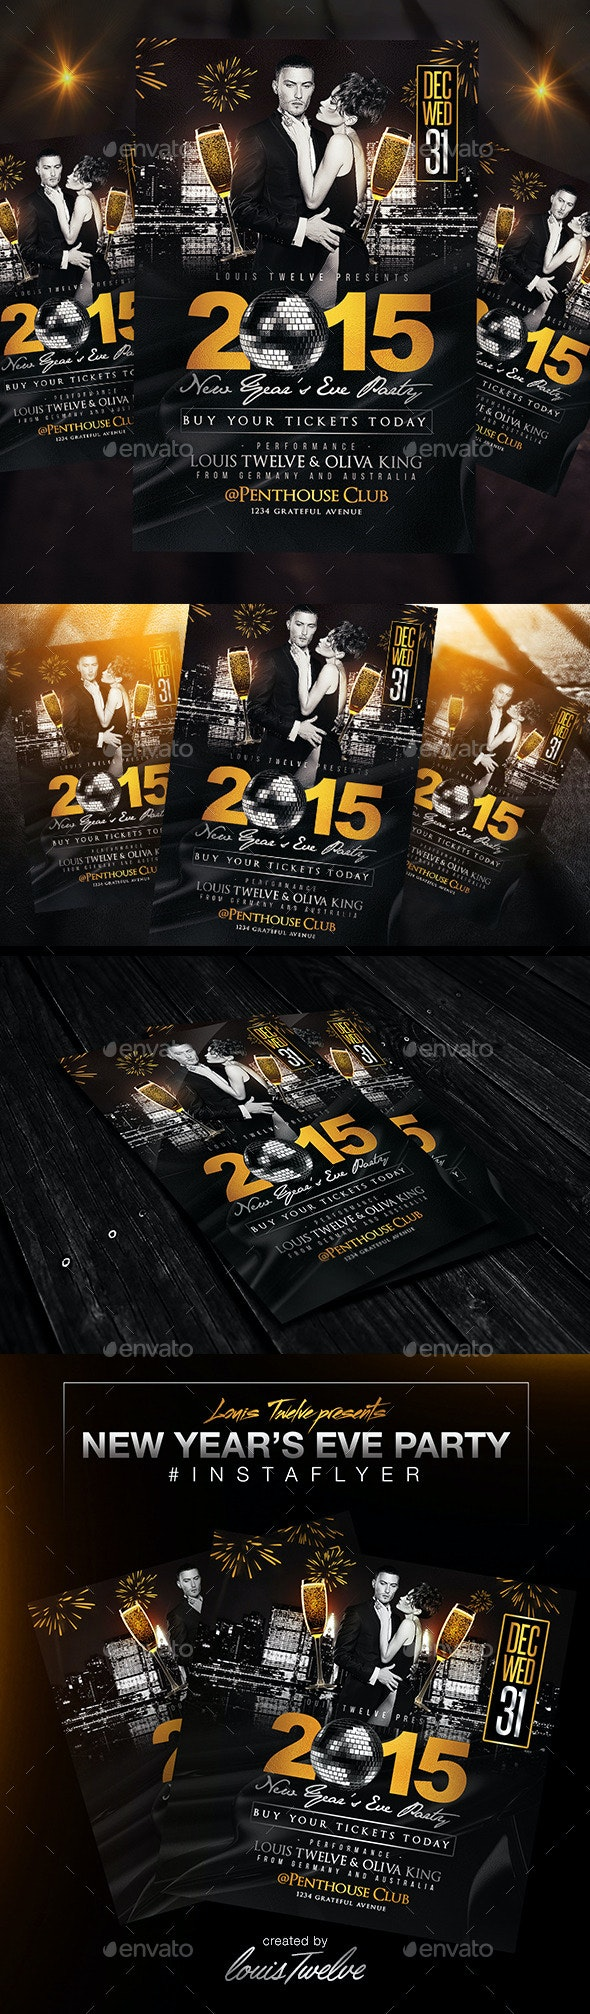 New Year's Eve Party Flyer + InstaPromo - Clubs & Parties Events